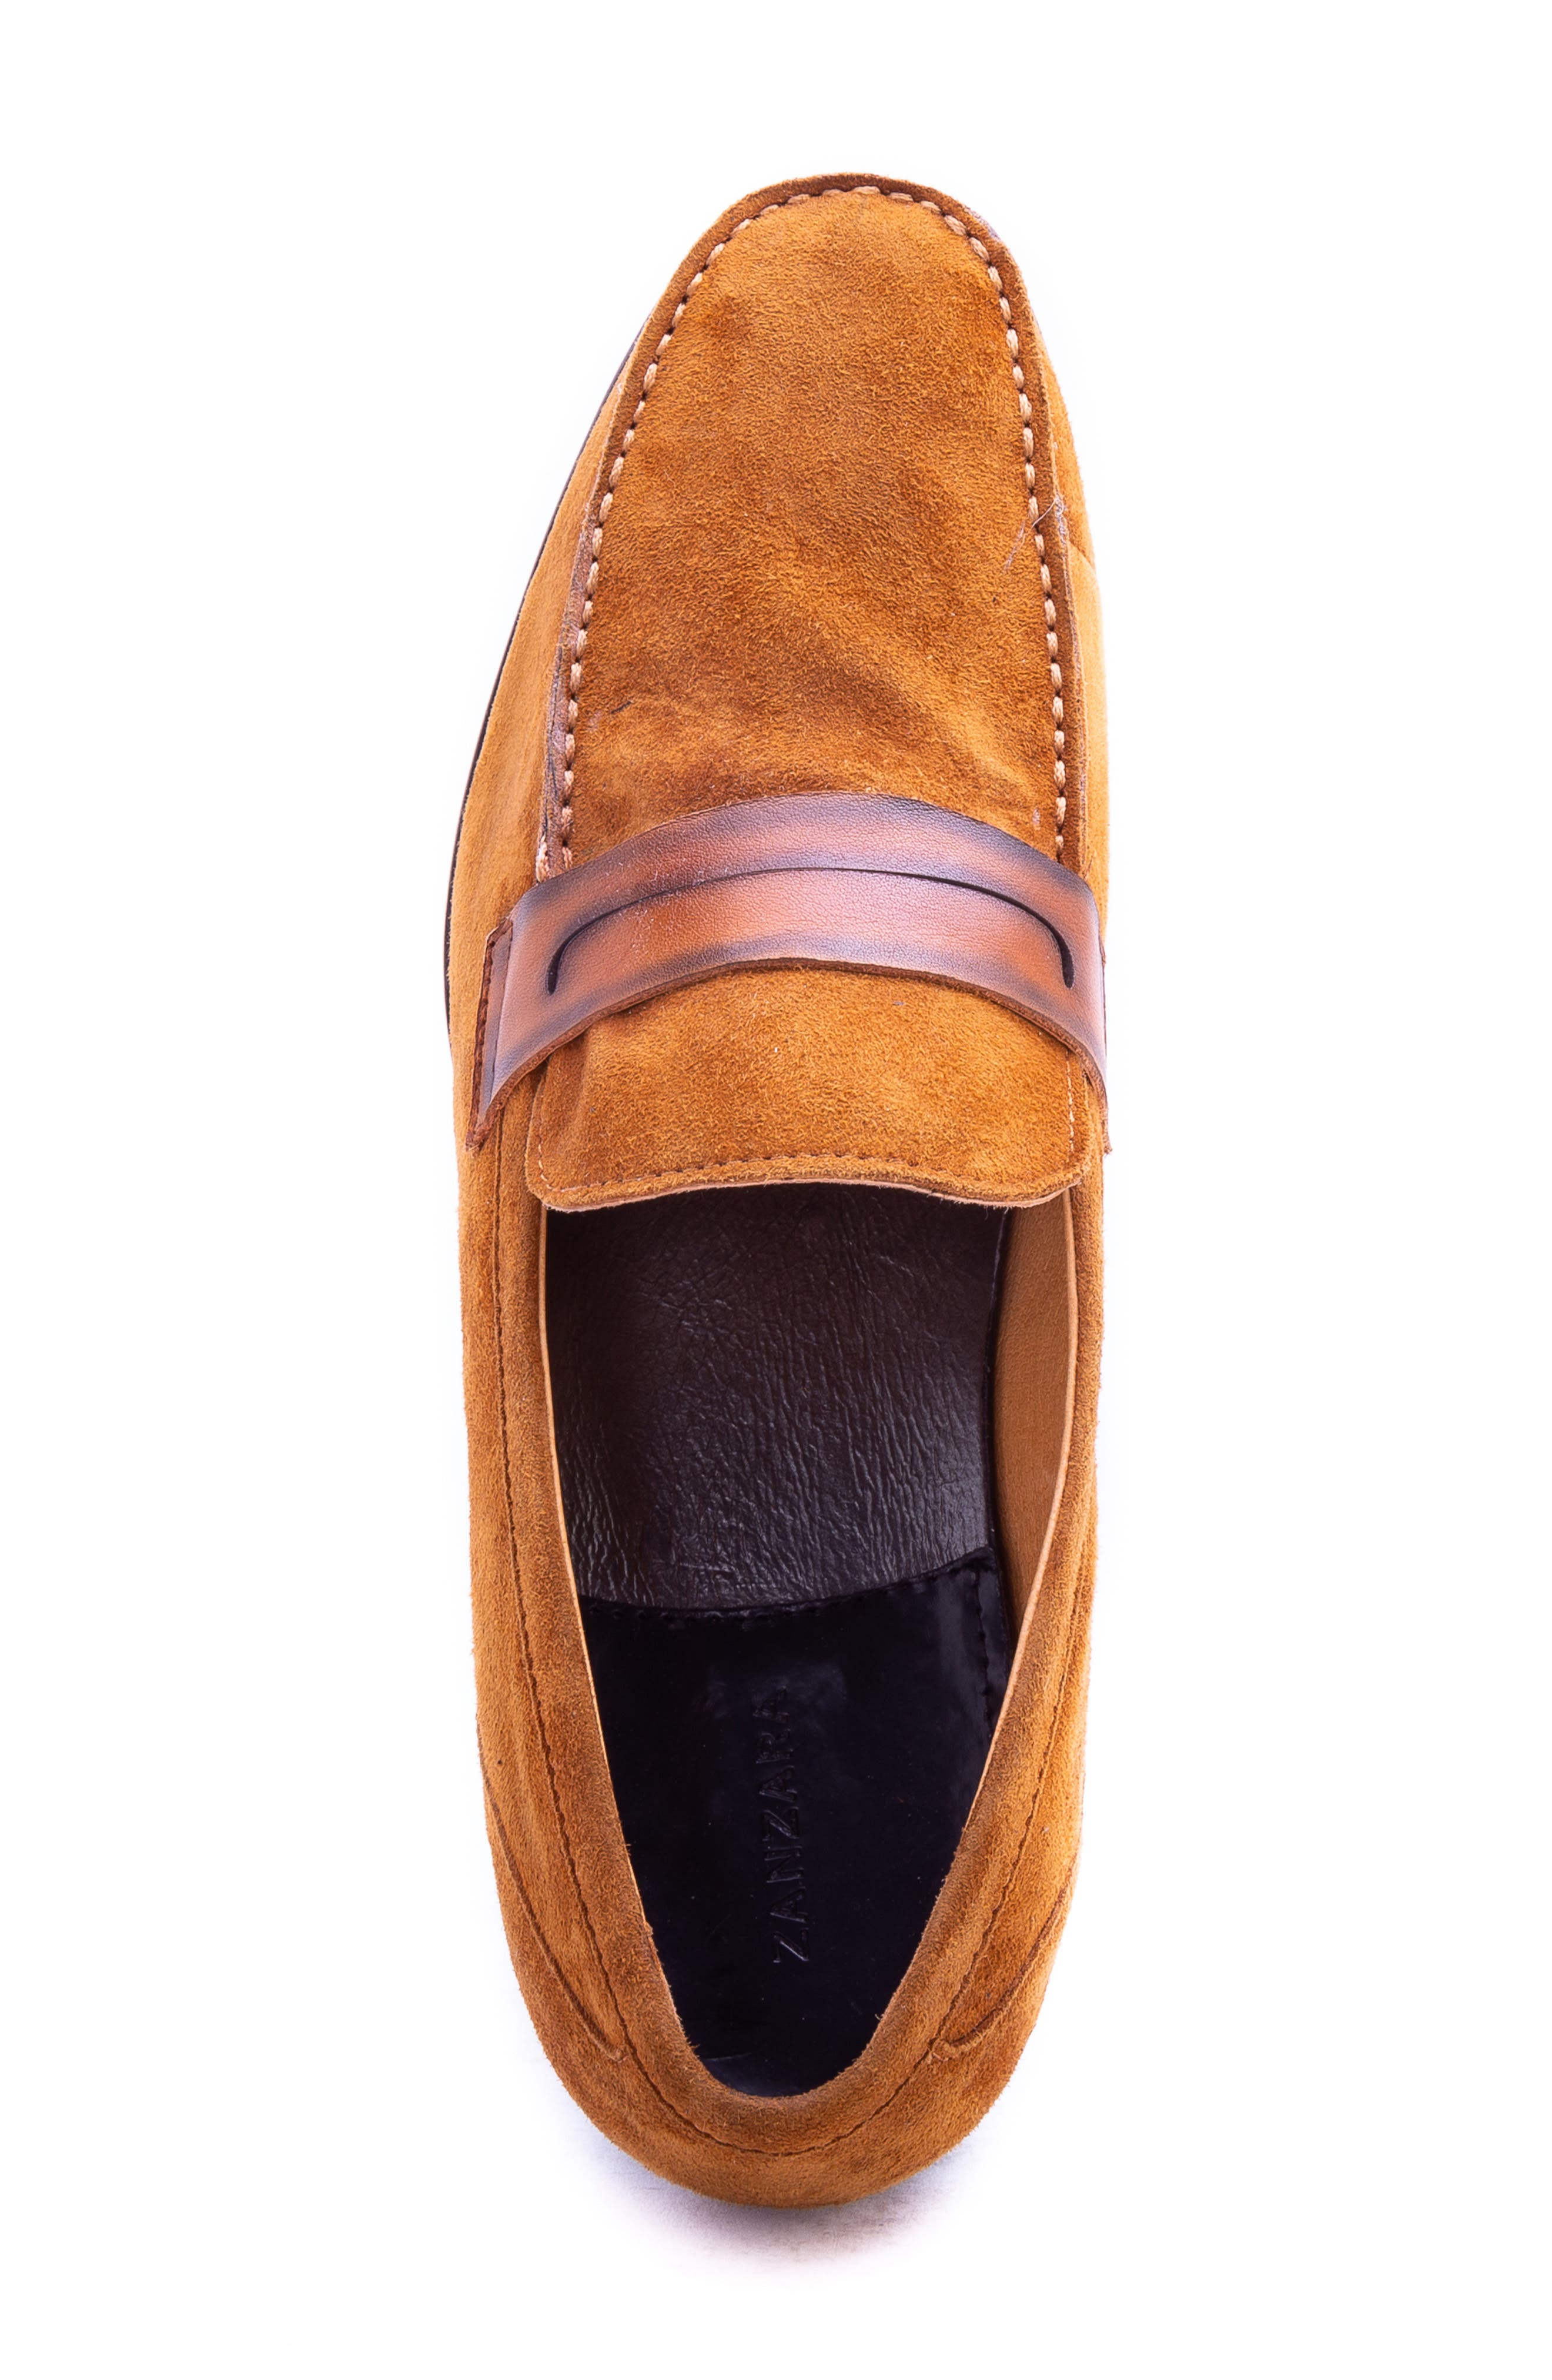 Opie Penny Loafer,                             Alternate thumbnail 5, color,                             COGNAC SUEDE/ LEATHER